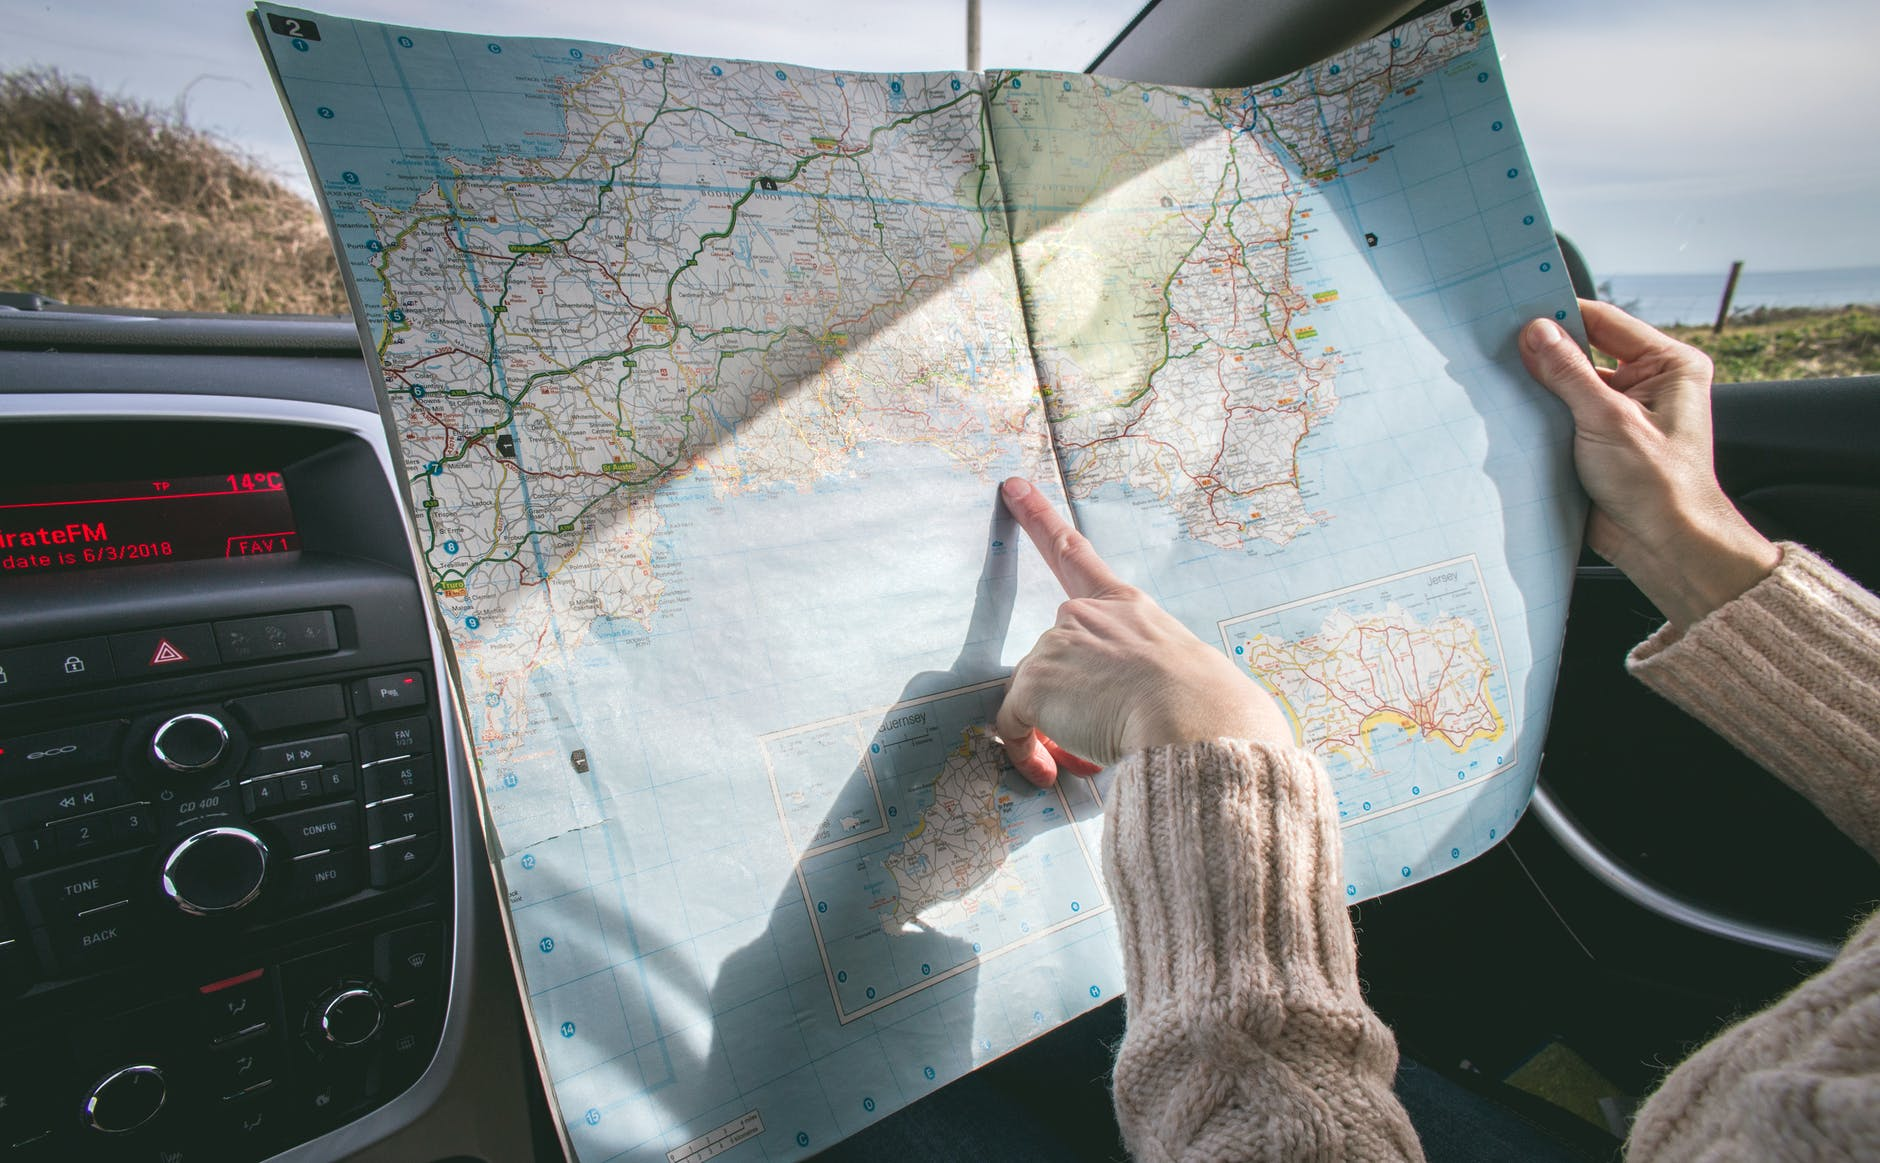 person wearing beige sweater holding map inside vehicle - solo road trips tips from travel experts via Wanderful